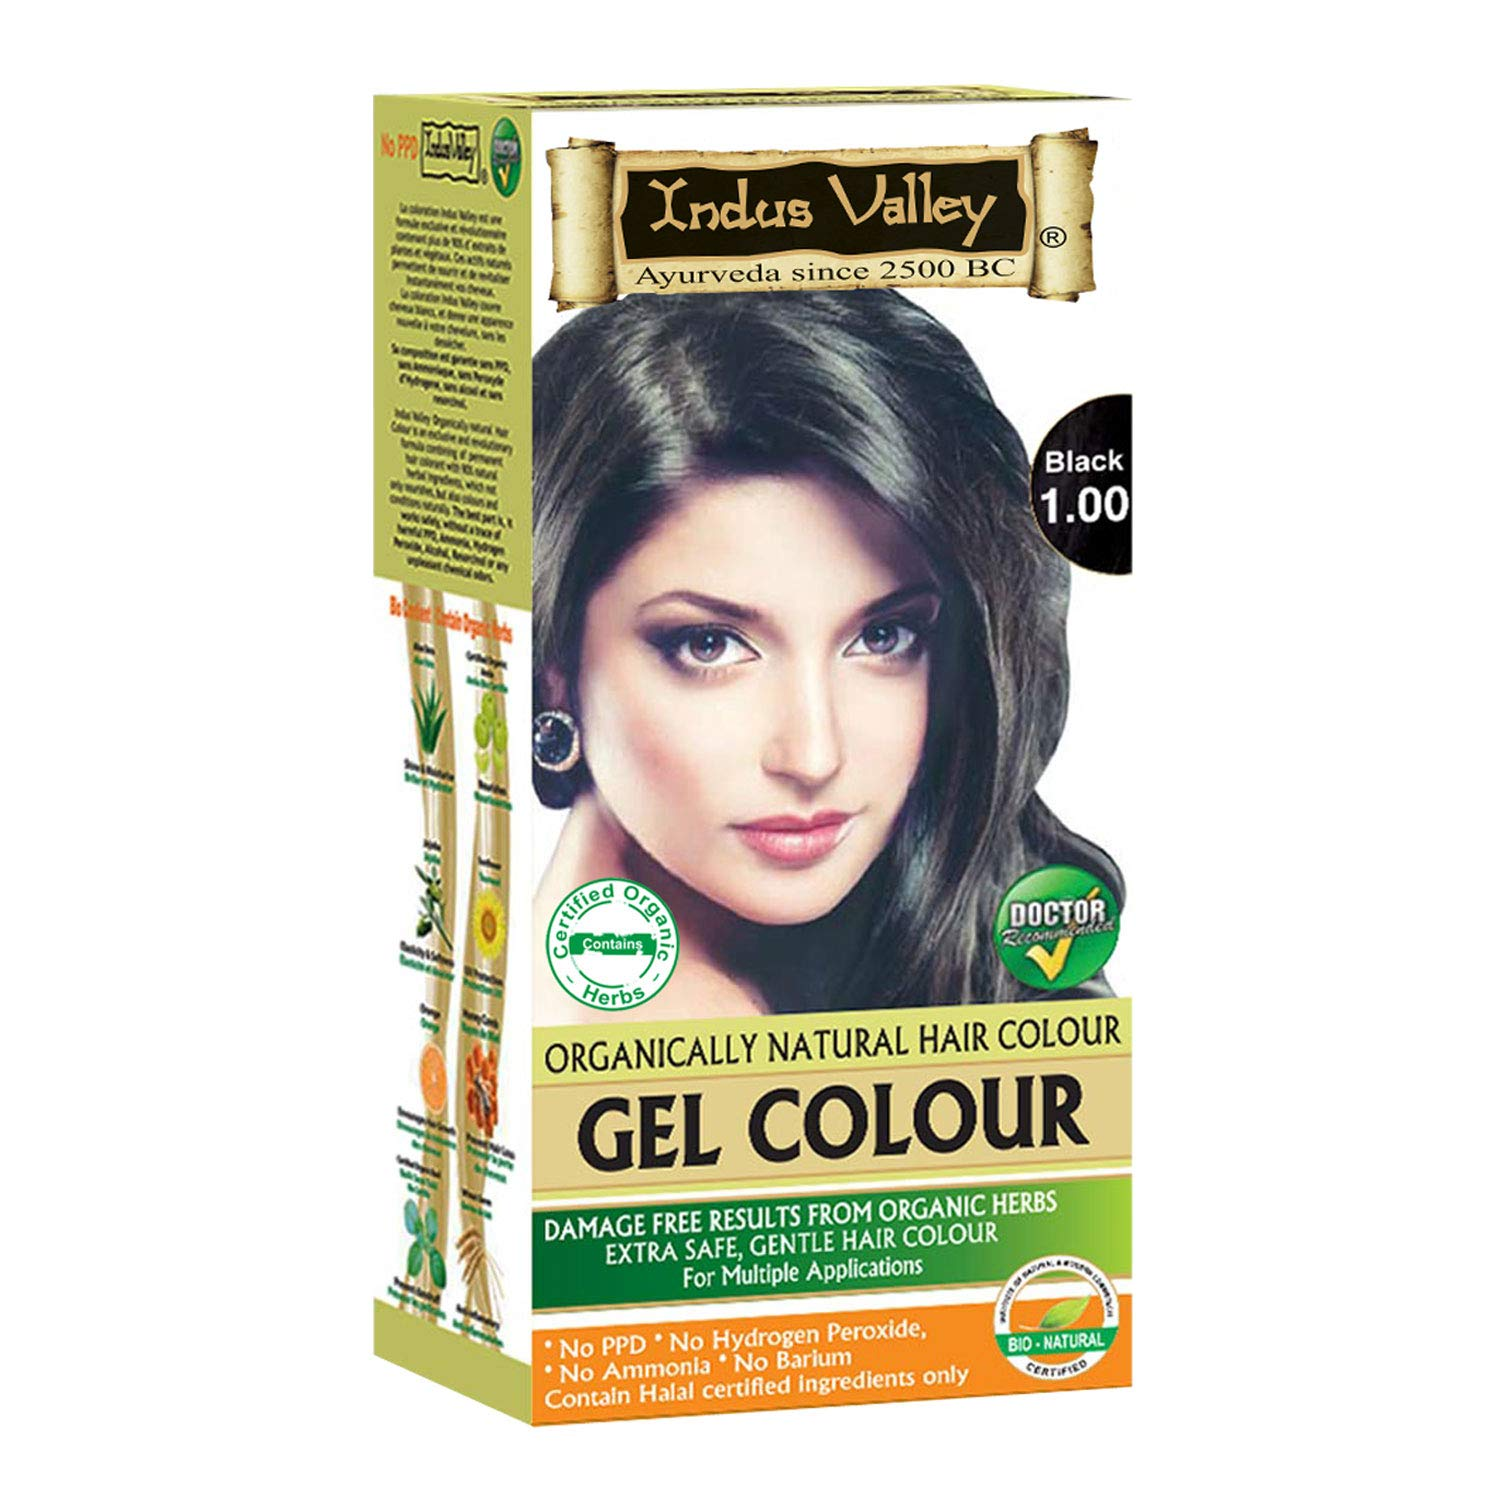 c63efdf71ecc3 Buy Indus Valley Natural Black Hair Colour- 1.0 Online at Low Prices in  India - Amazon.in